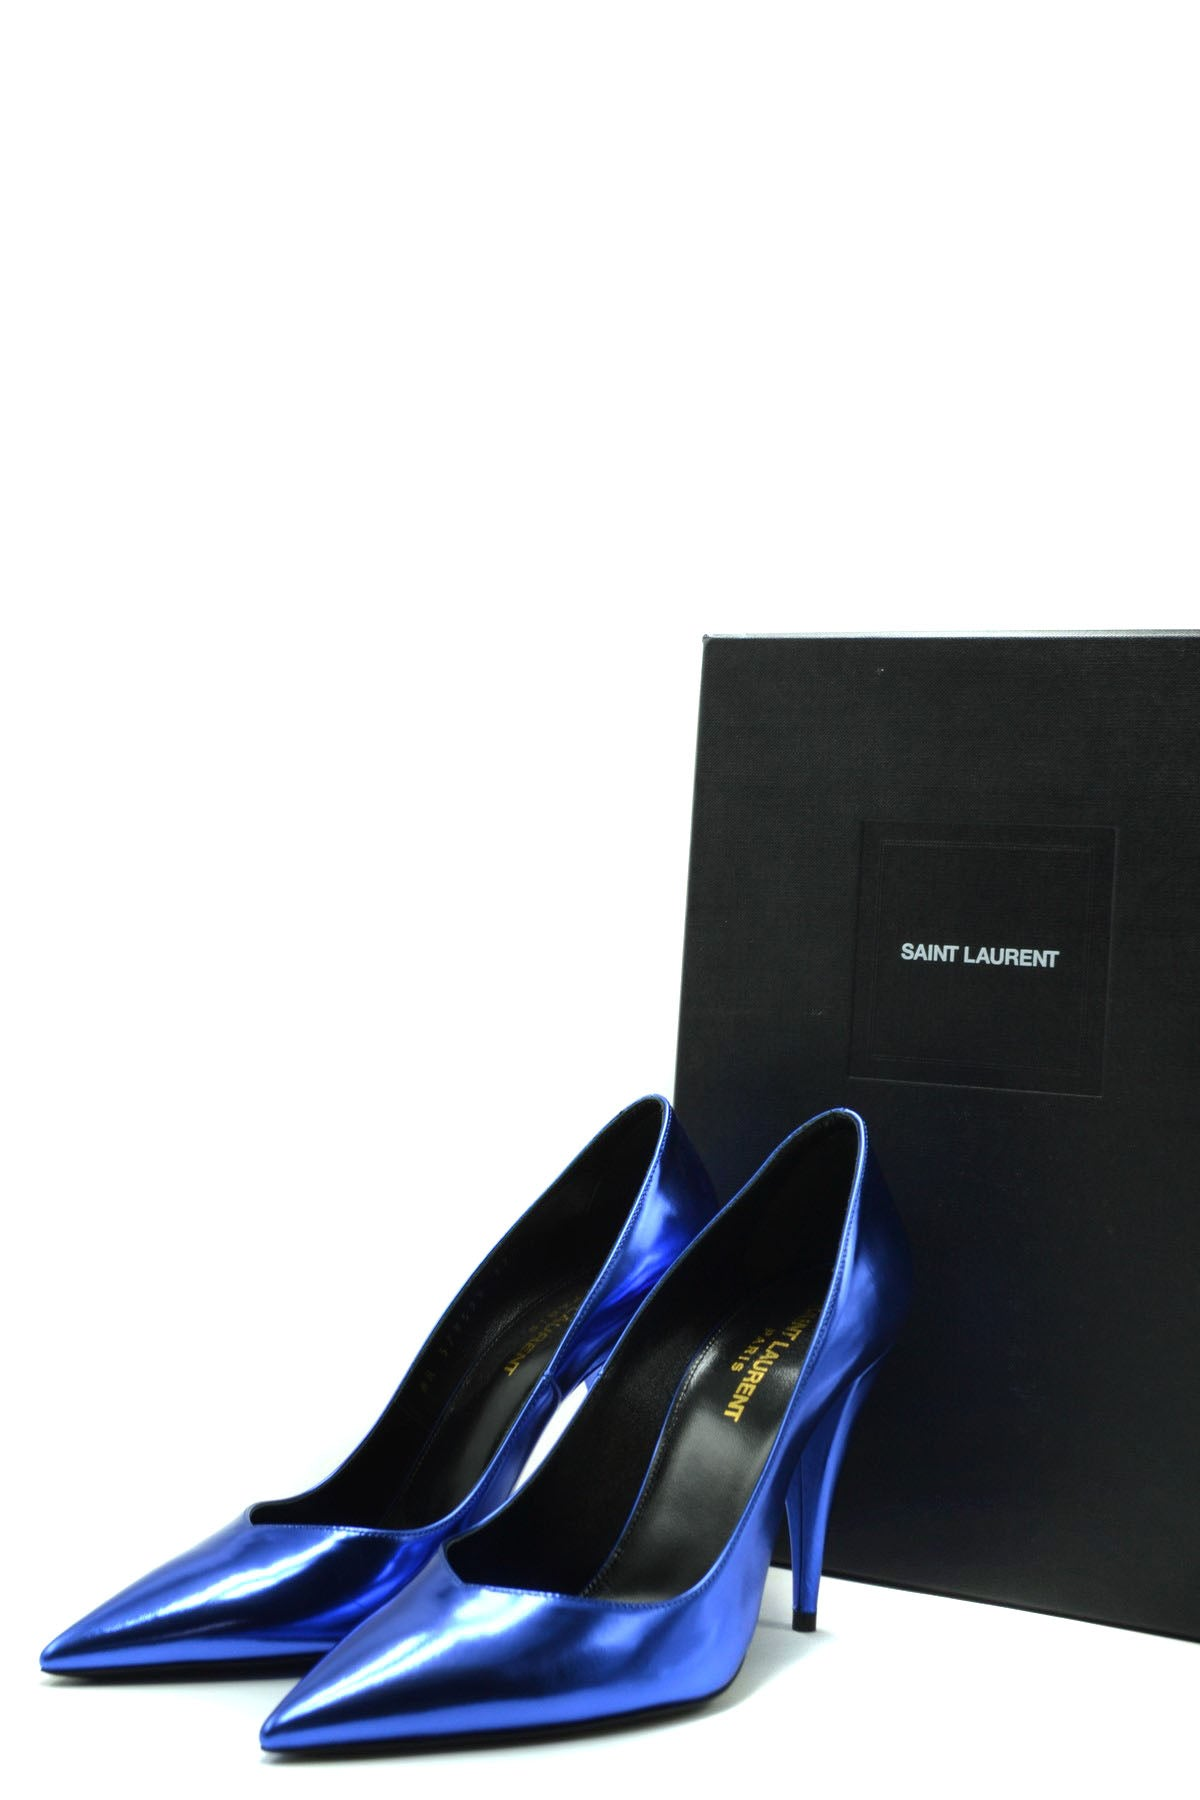 Shoes Saint Laurent--Product Details Manufacturer Part Number: 578599 Aal00 4550Year: 2020Composition: Leather 100%Size: EuHeel'S Height: 10Gender: WomanMade In: ItalySeason: Fall / WinterType Of Accessory: ShoesMain Color: BlueTerms: New With Label-Keyomi-Sook